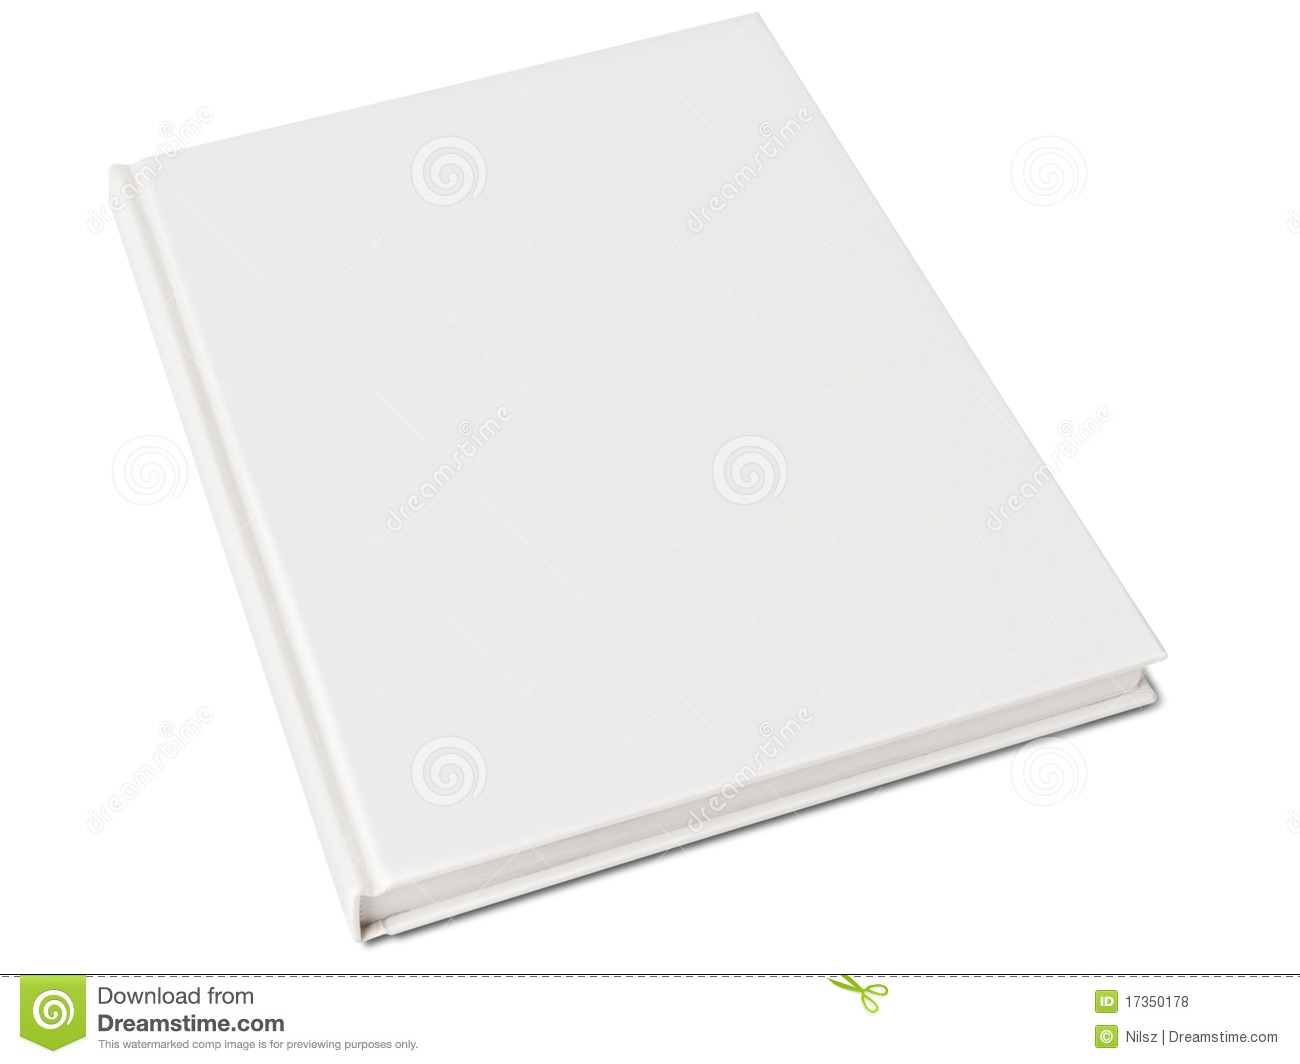 Hardcover Book With Pictures : Blank hardcover book stock photo image of template